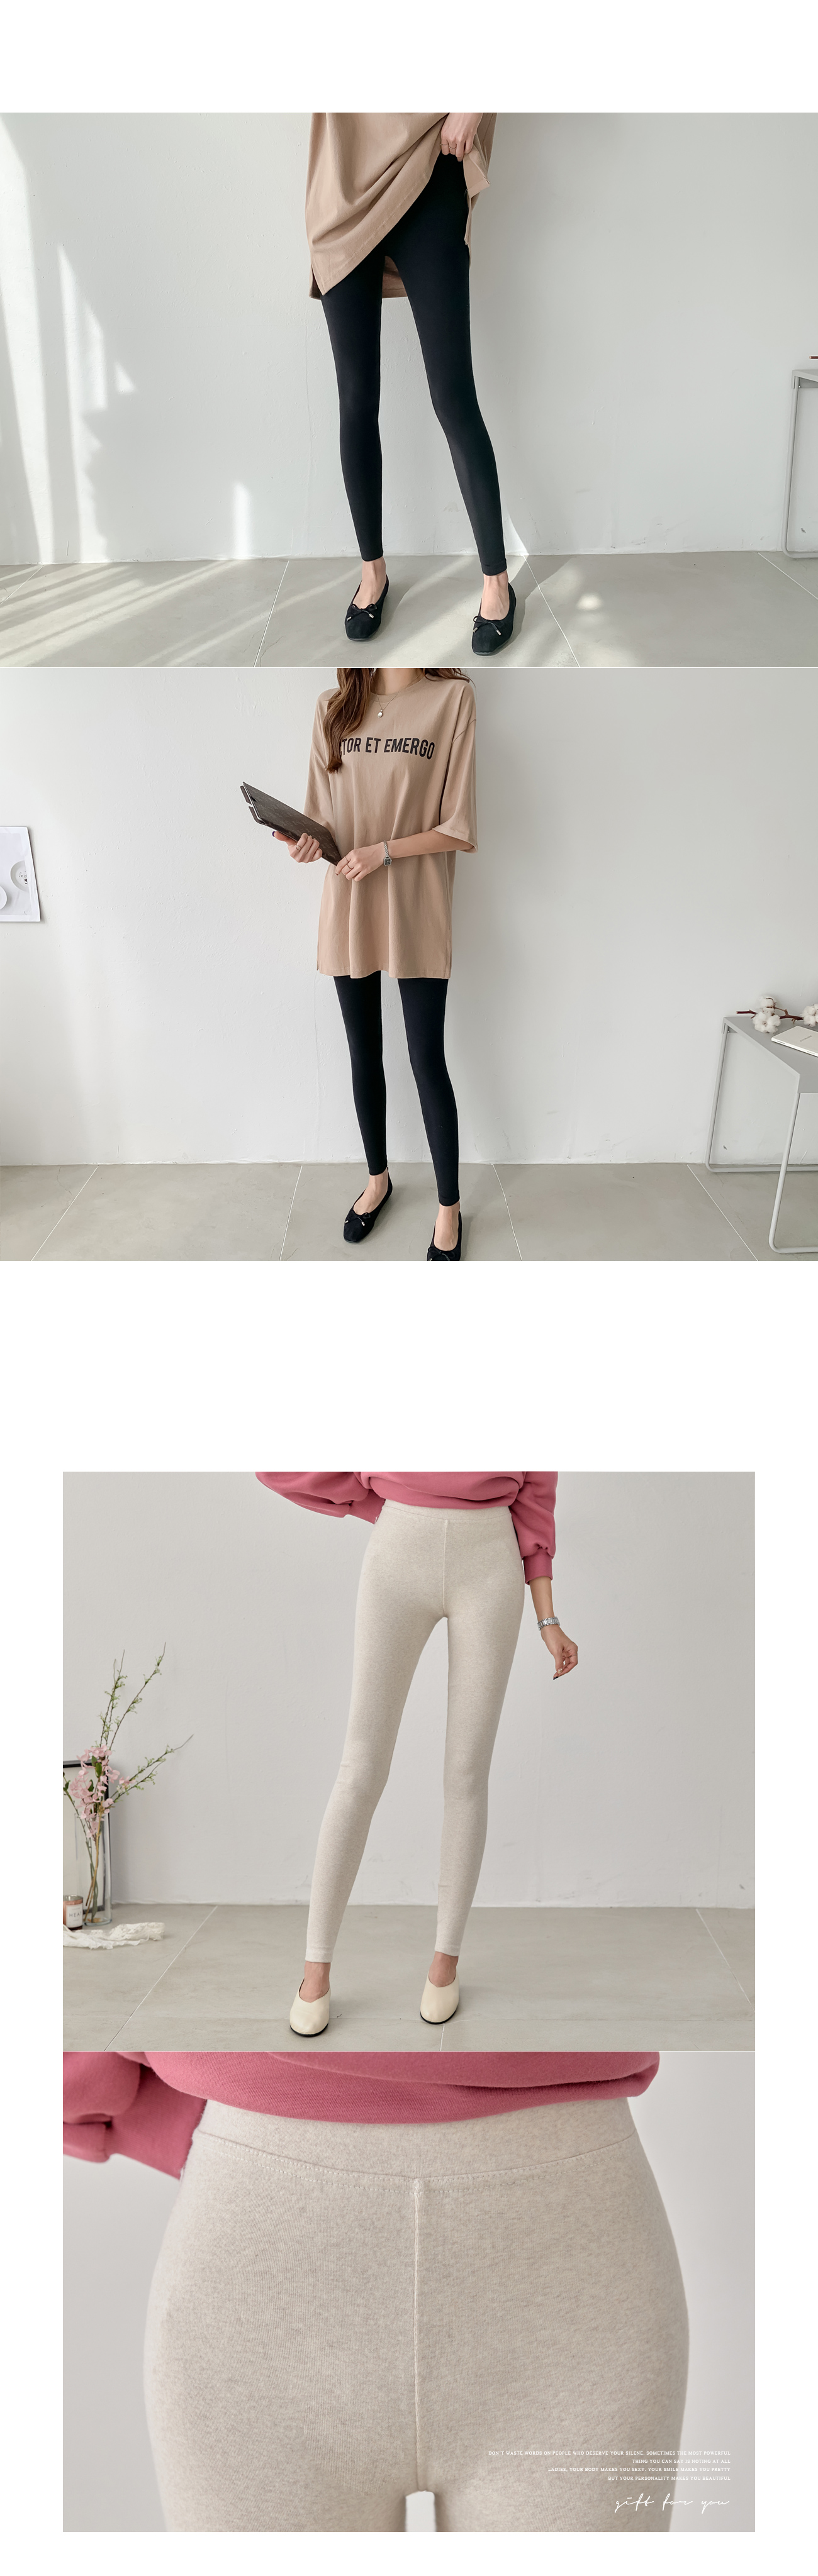 Soft Basic Leggings #85584